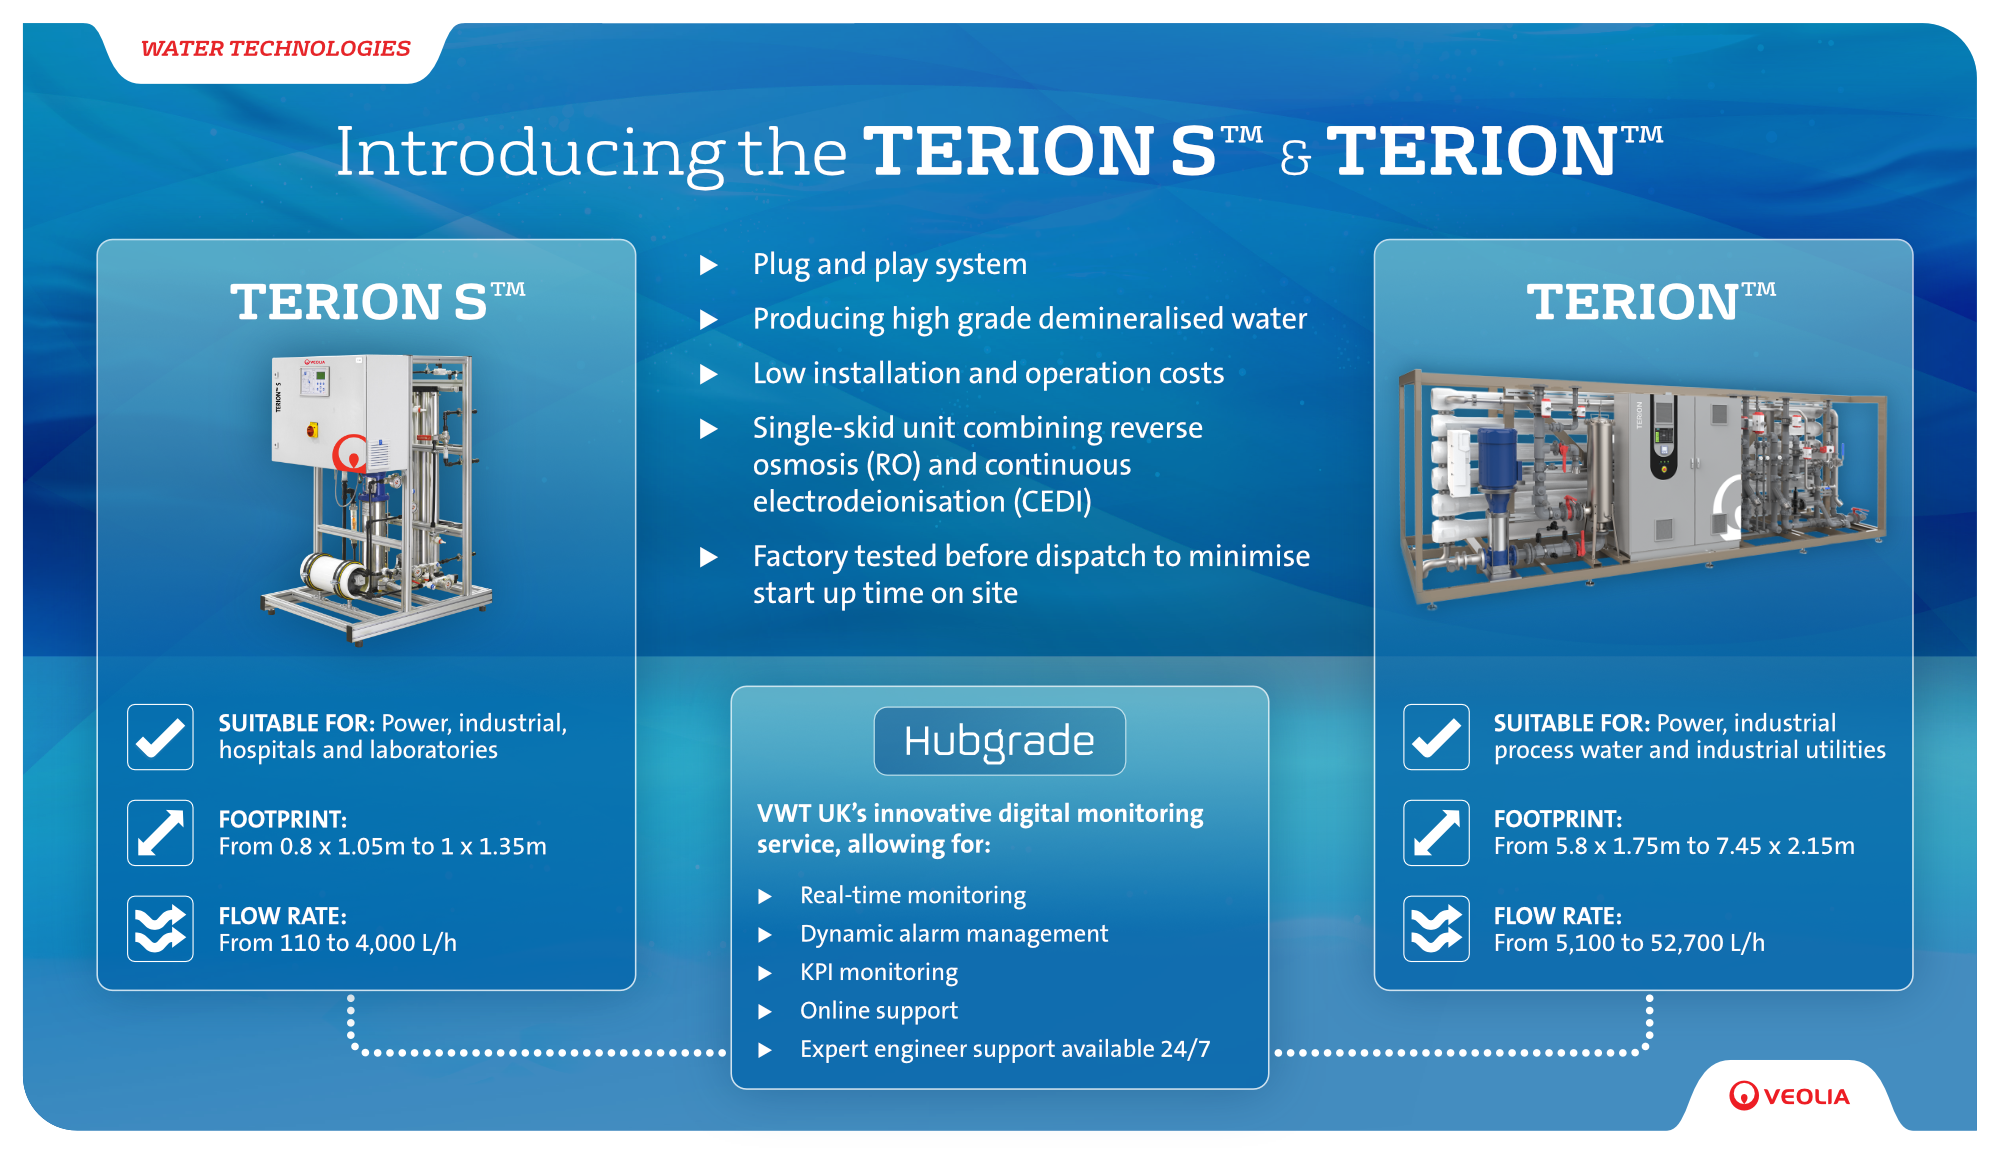 Veolia_Terion_preview4 (1)